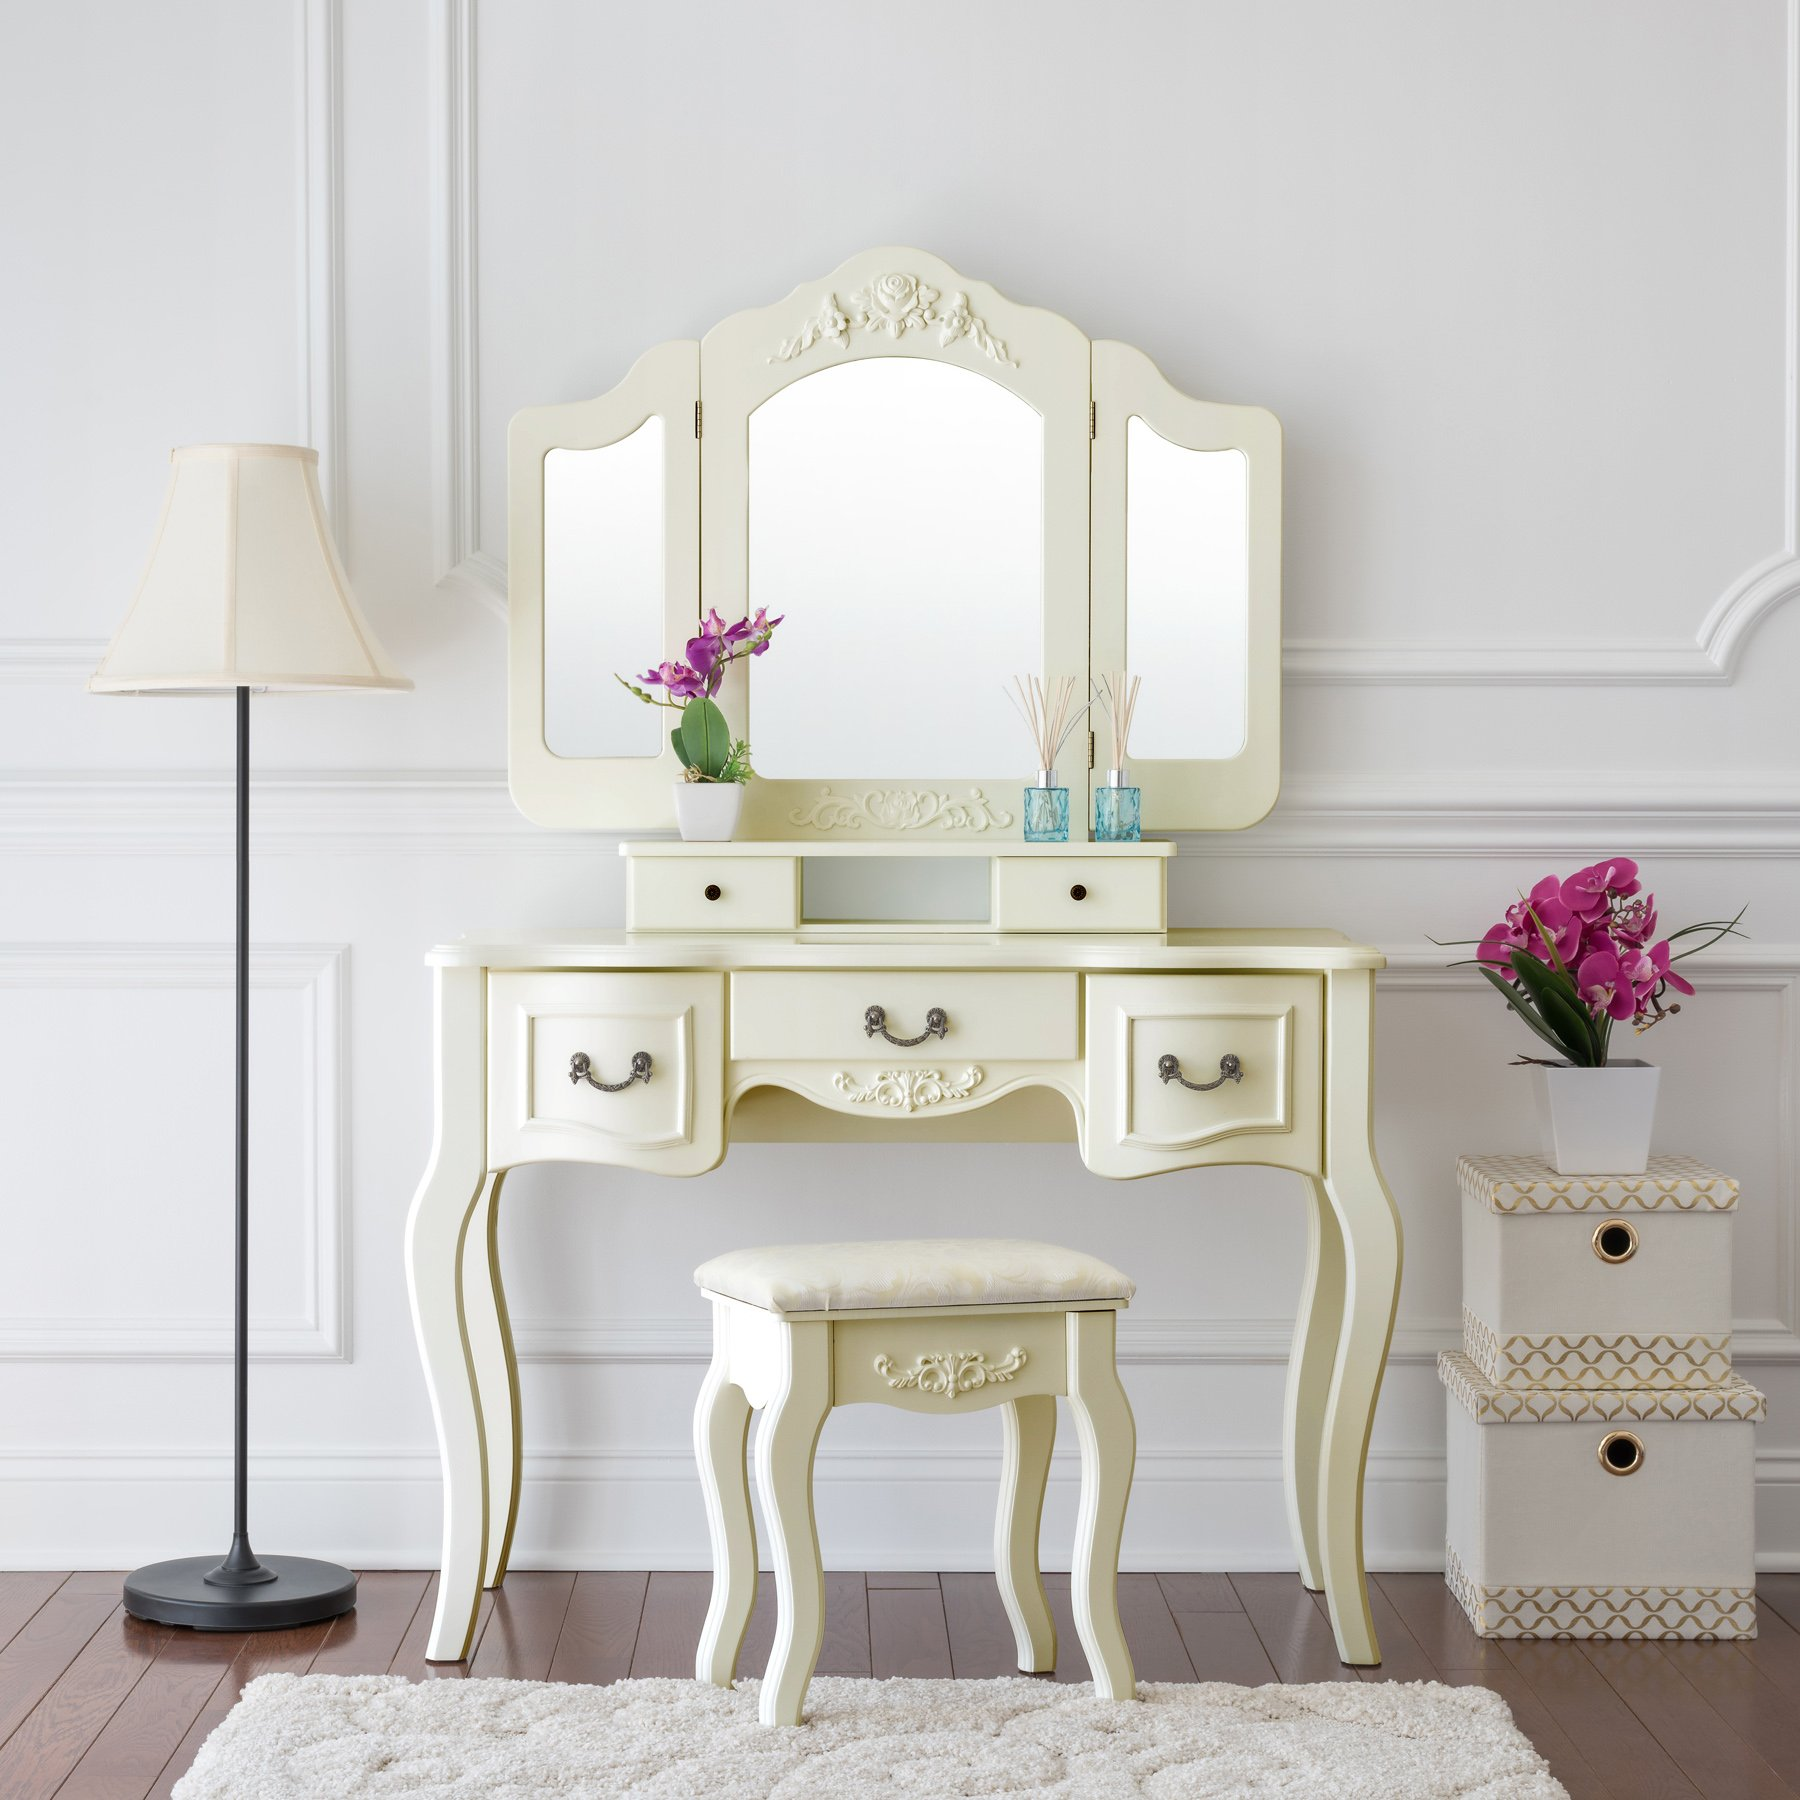 Fineboard FB-VT04-IVW Vanity Beauty Station Makeup Table and Wooden Stool 3 Mirrors and 5 Organization DrawersSet, Ivory White by Fineboard